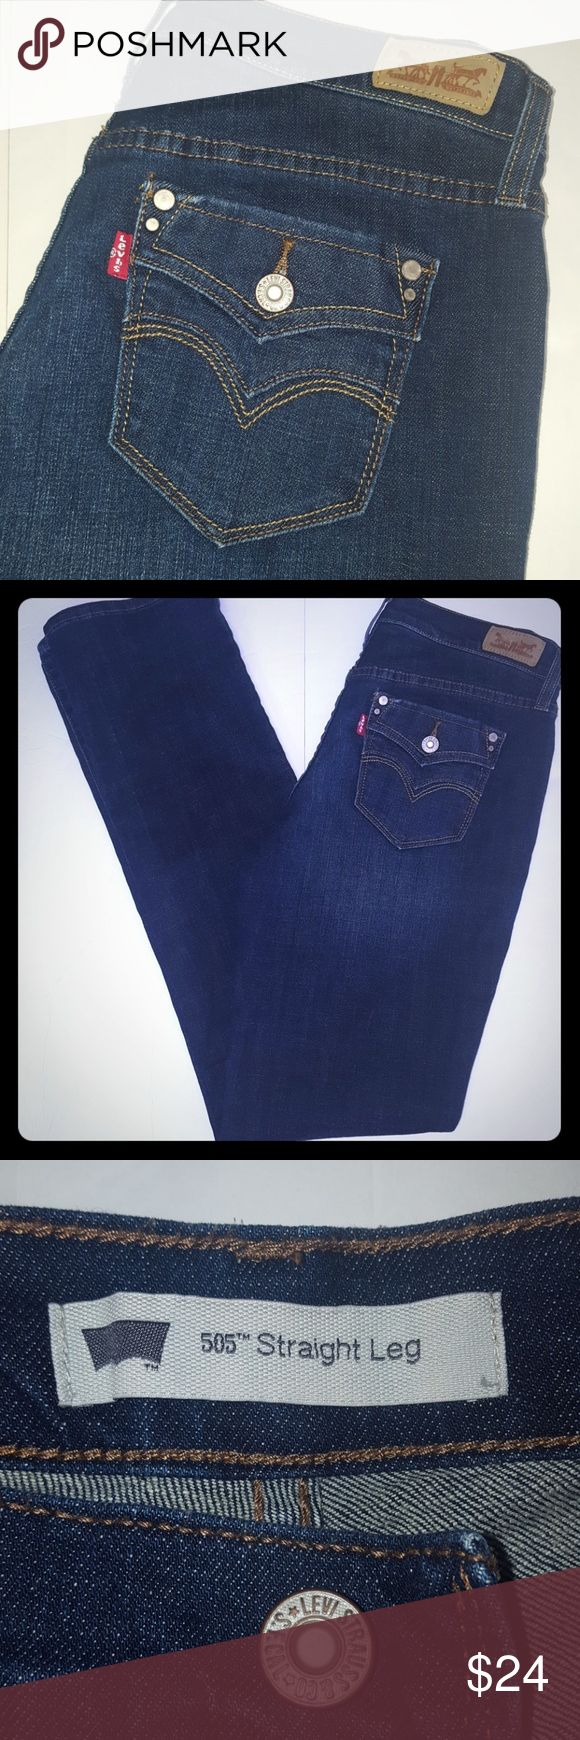 """Levi's 506 straight leg jeans nwot 4 long Never worn. Dark wash jeans. Measurements are approximate and taken laying flat  Inseam 33 1/2"""" Rise 9"""" Waist flat measures 14 1/2"""" 99% cotton  1% elastane Levi's Jeans Straight Leg"""